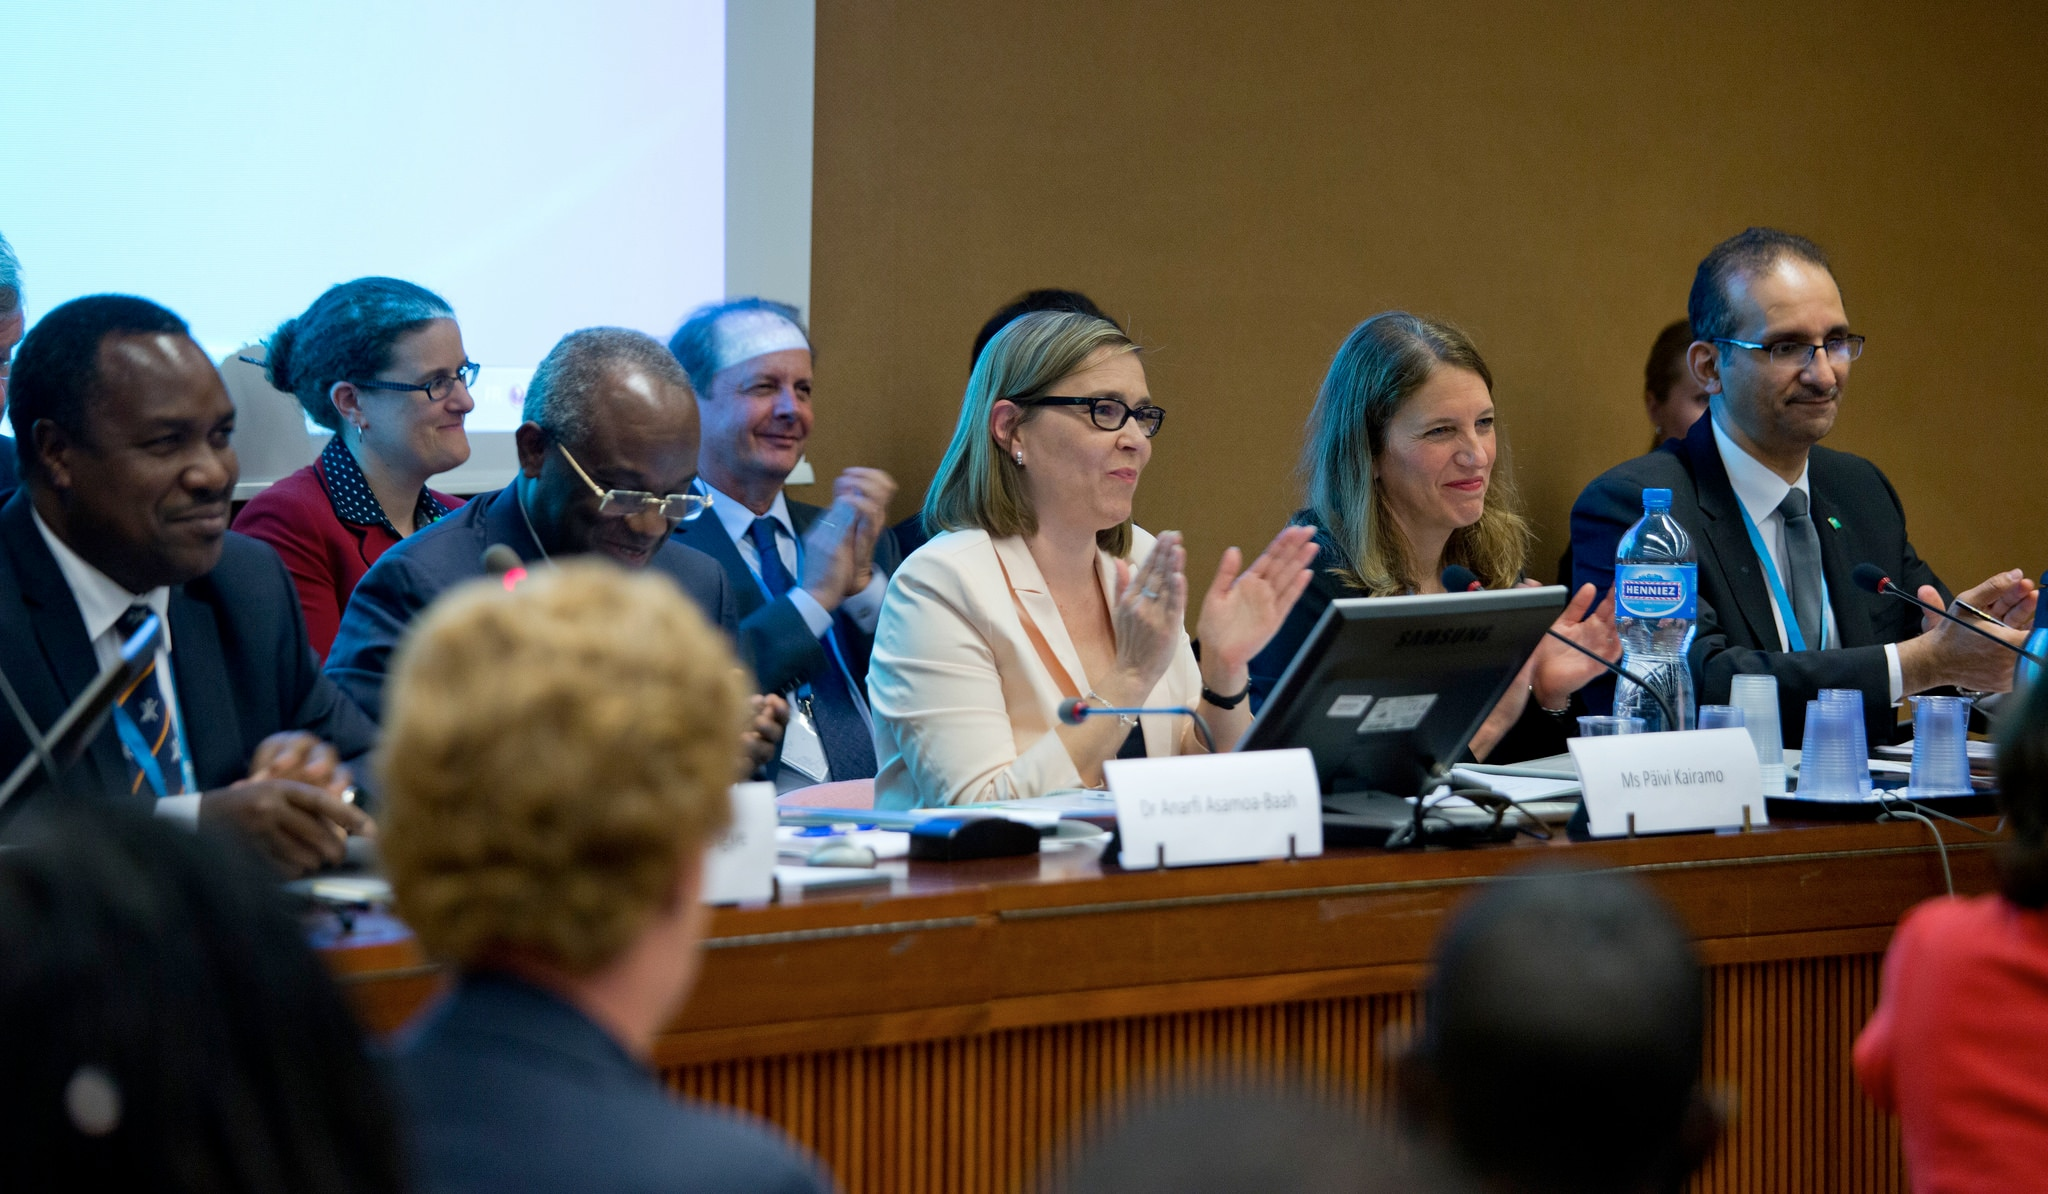 Secretary Burwell attends a World Health Assembly side event on the Global Health Security Agenda.